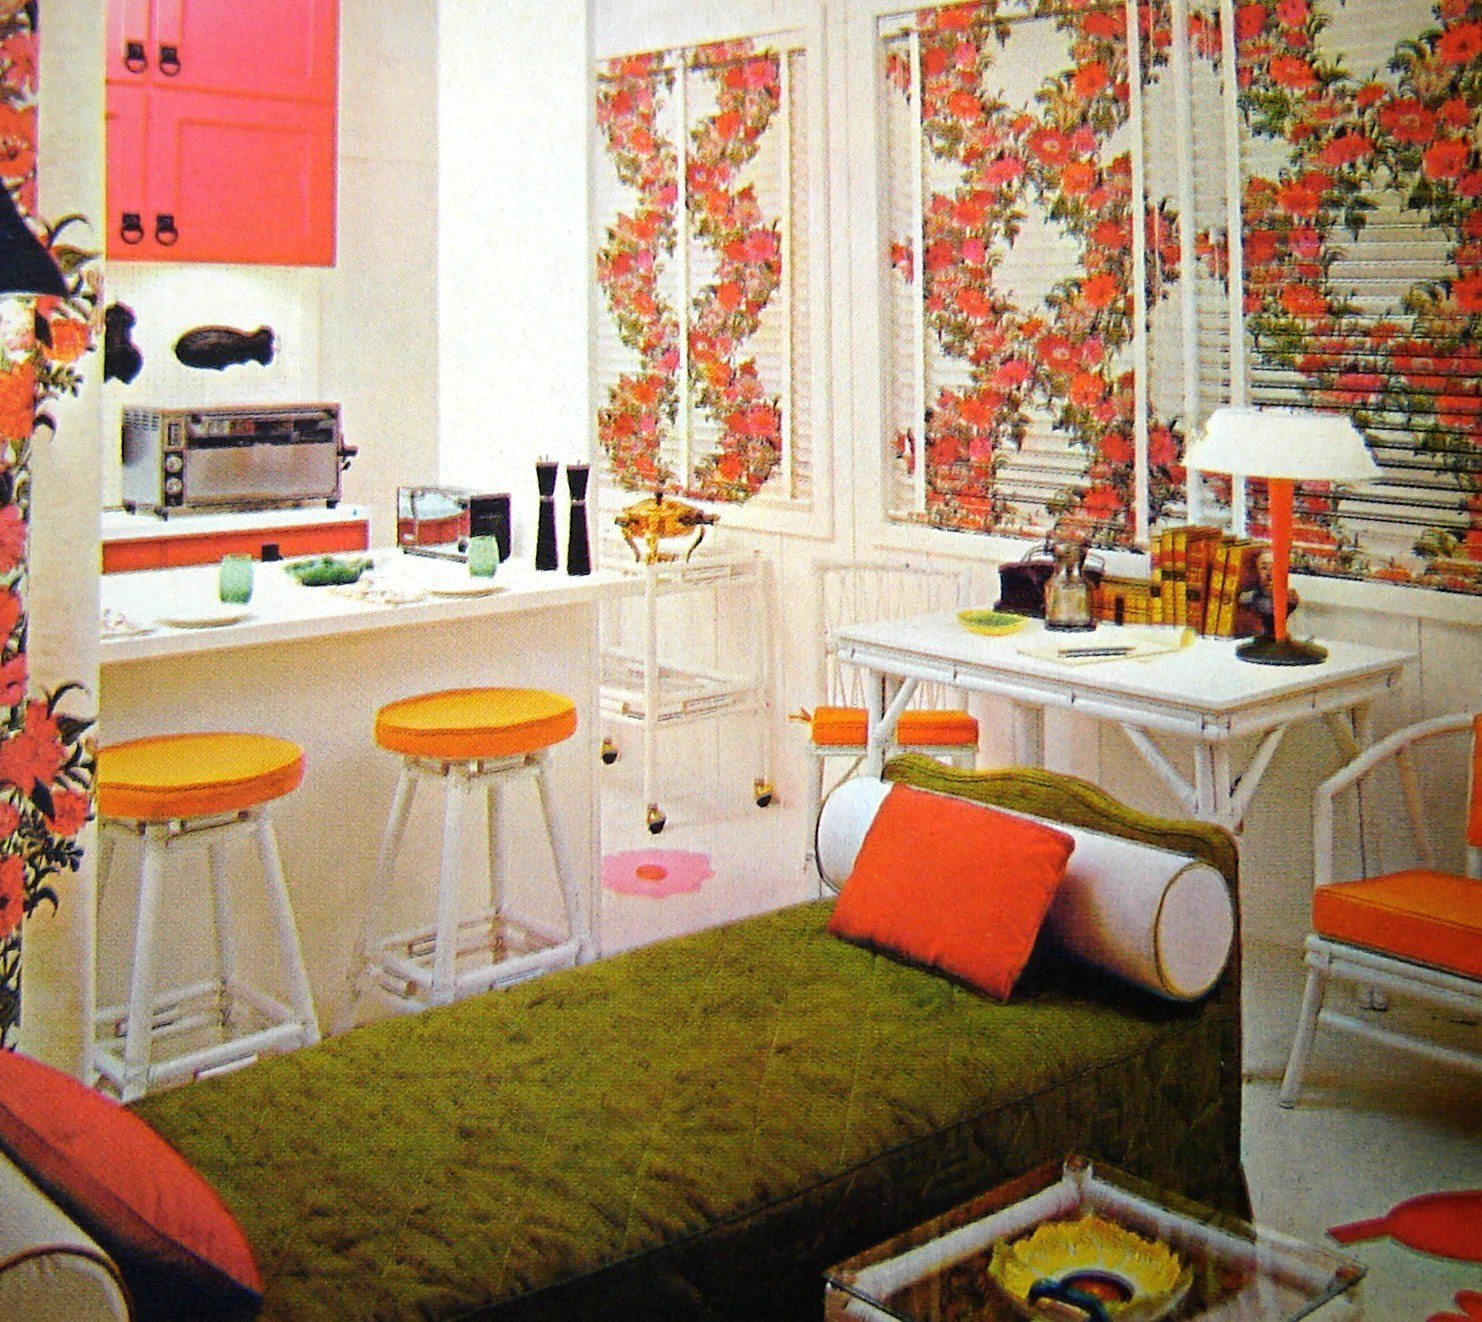 Old fashioned sixties kitchen and living area with Chintz floral patterns in white and orange throughout